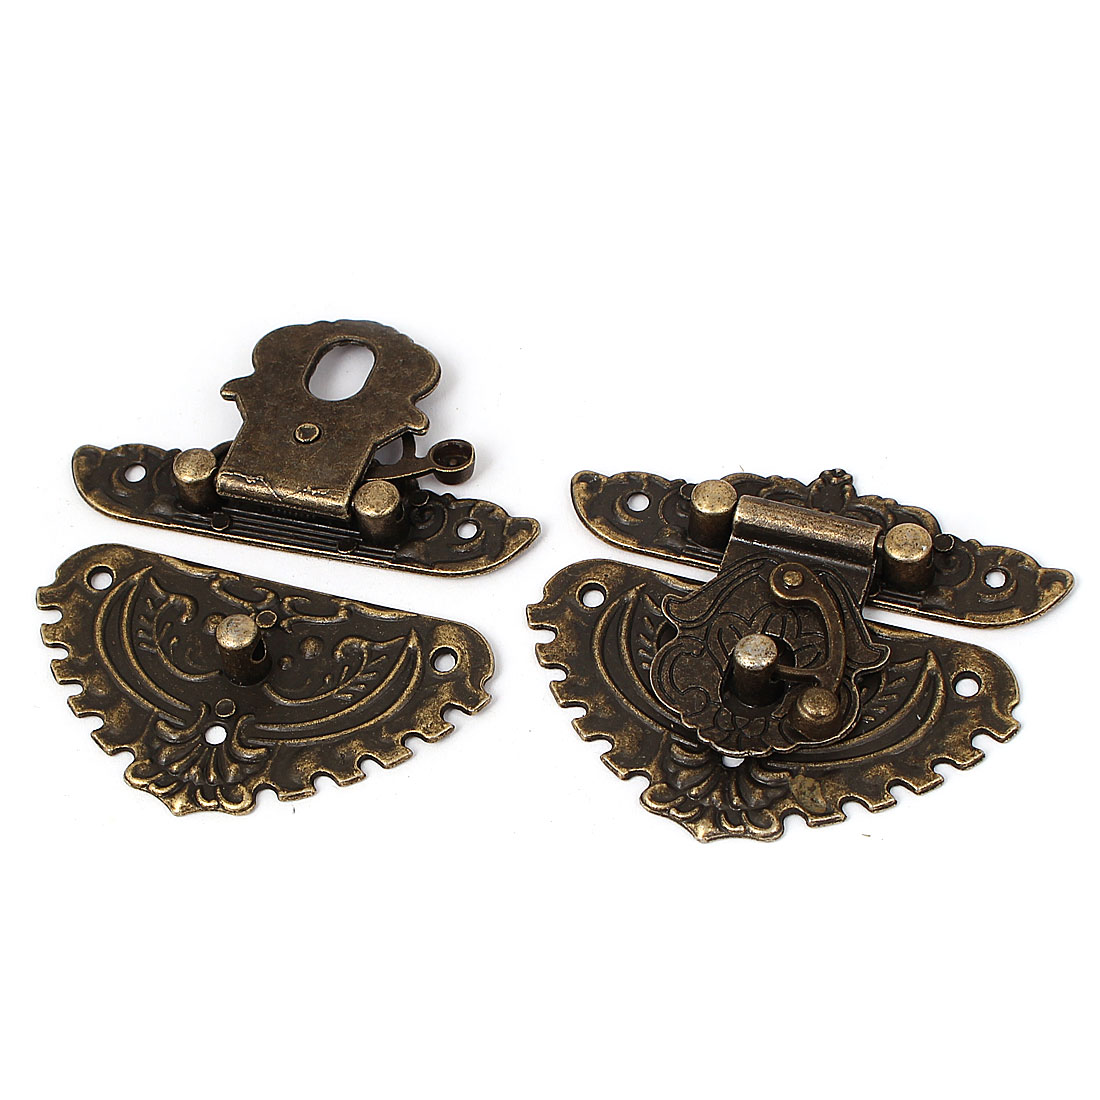 Metal Decorative Carved Wood Box Latch Case Hasp Lock Hinge Bronze Tone 2pcs